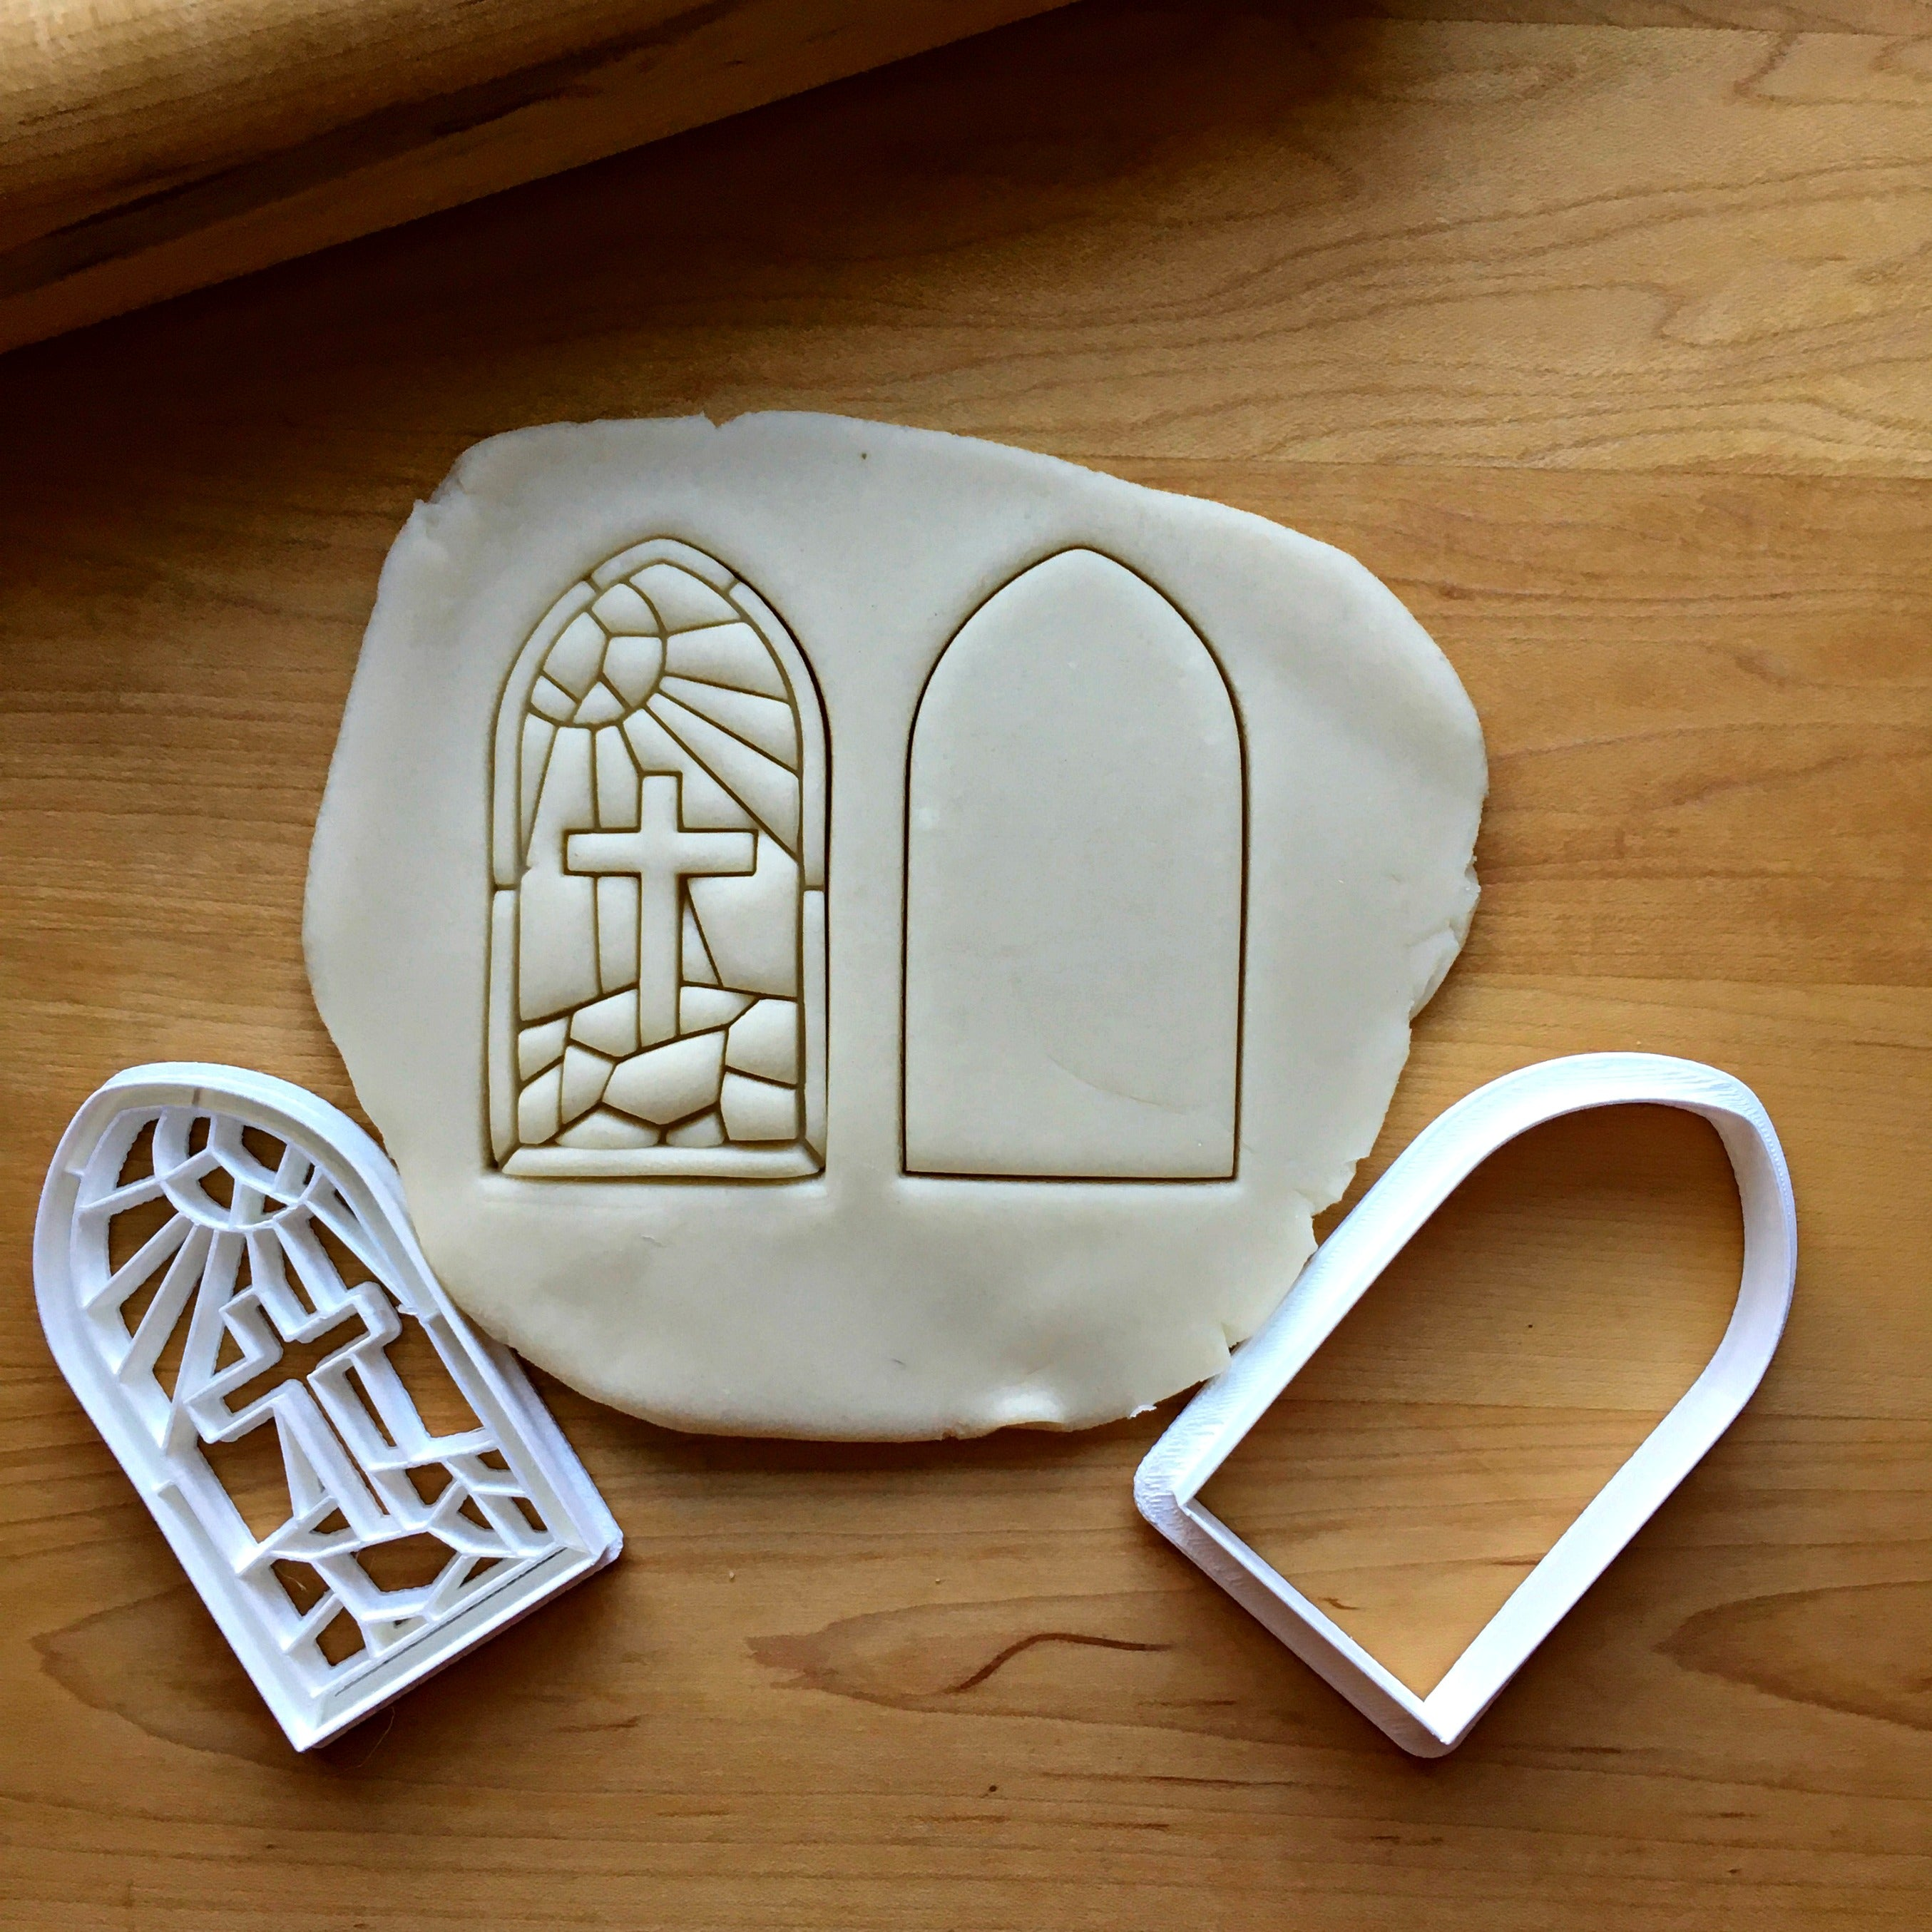 Set of 2 Stained Glass Window Cookie Cutters/Dishwasher Safe